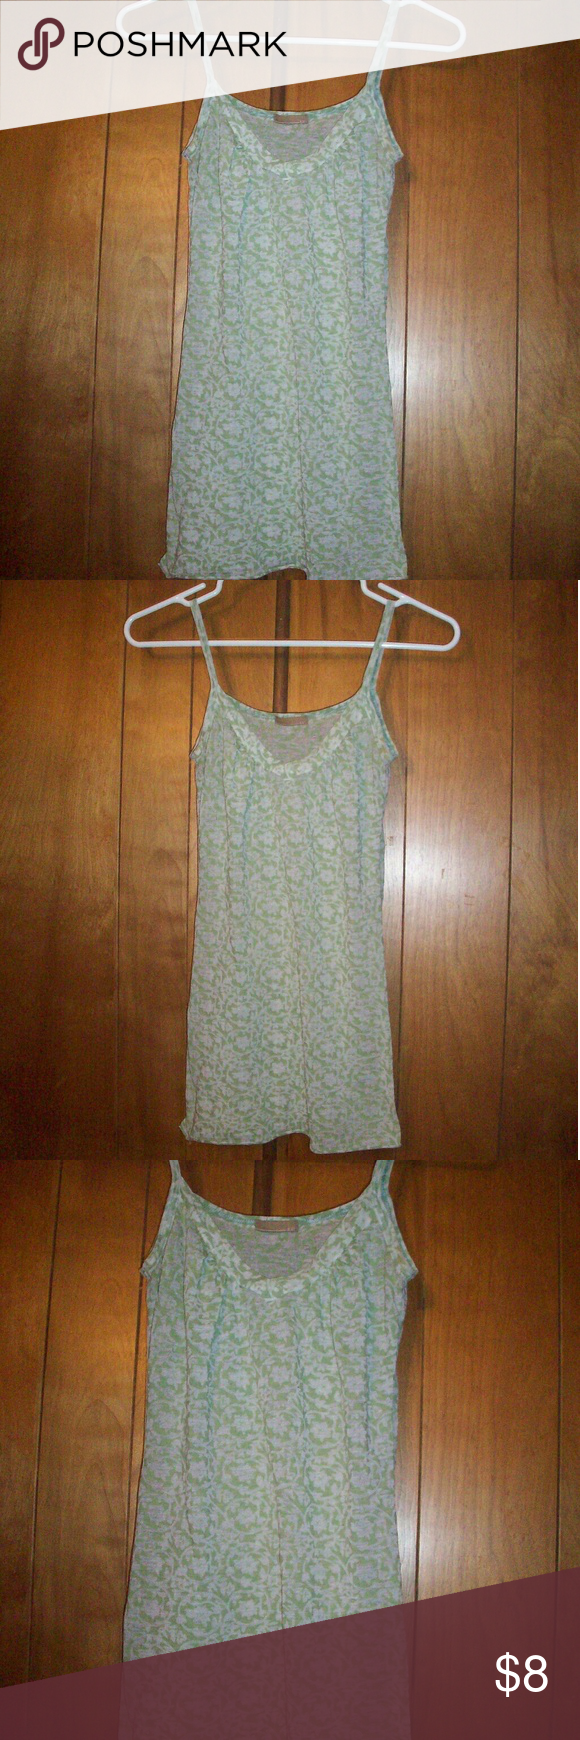 XXI Sheer Floral Design Green Cami Tank Top XXI Sheer Floral Design Green Cami Tank Top -soft & stretchy -Fits S-L -gently used XXI Tops Tank Tops